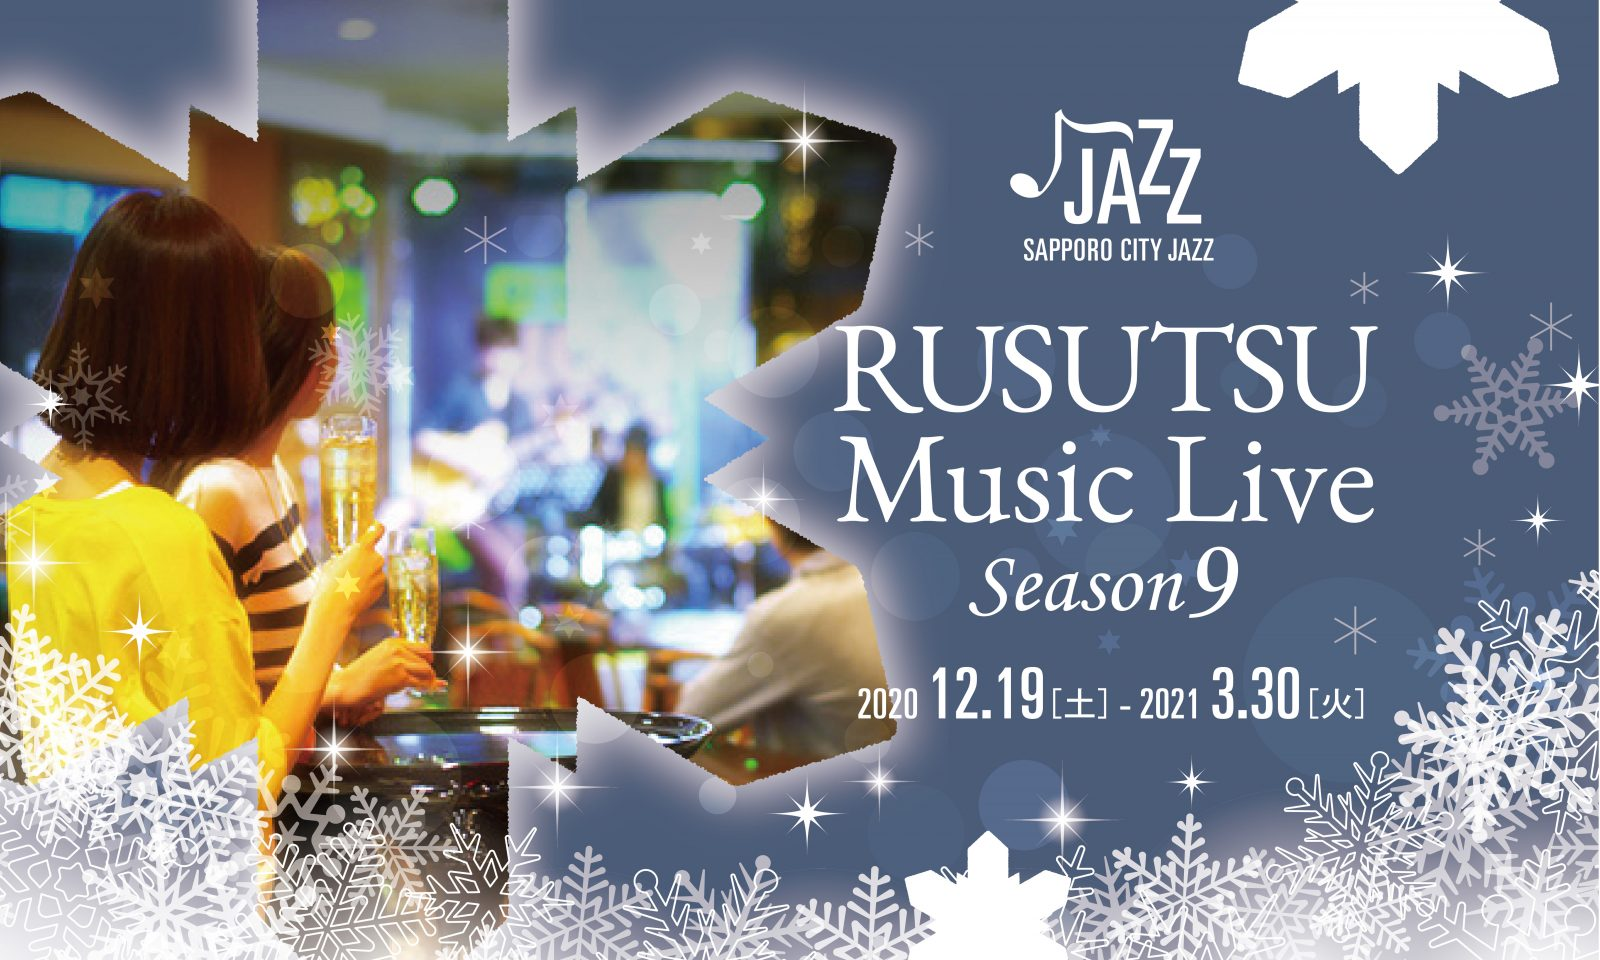 RUSUTSU Music Live Season9